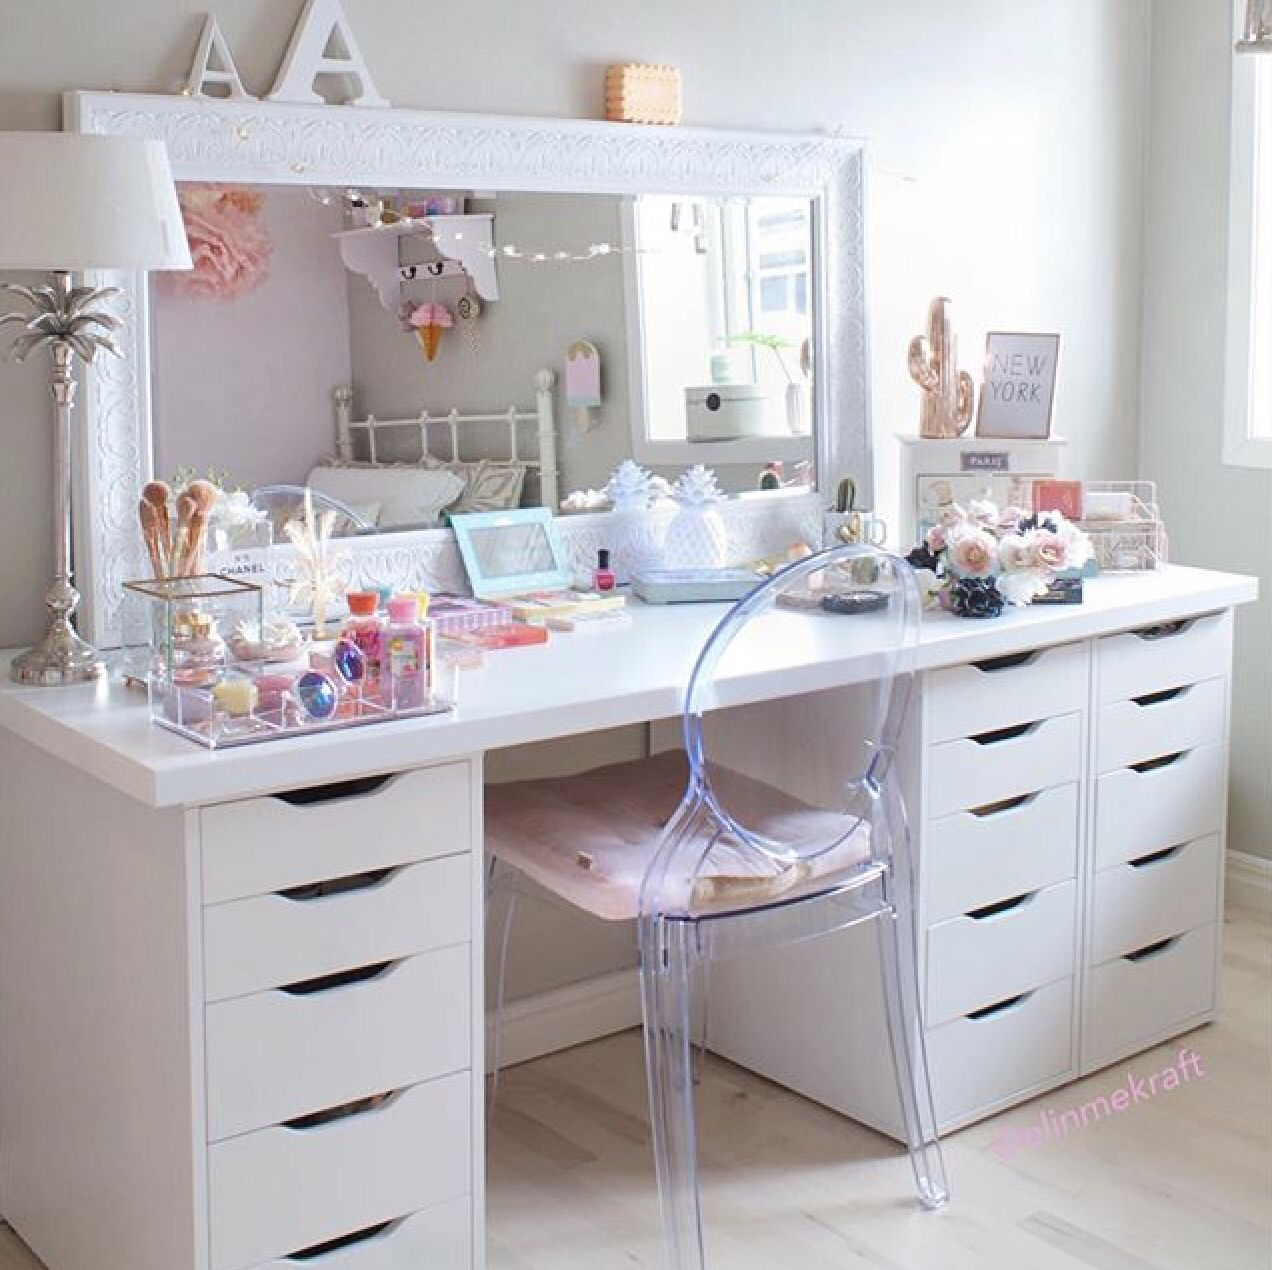 Featuring The Ikea Alex Drawers With Sonny Cosmetics Alex Drawer